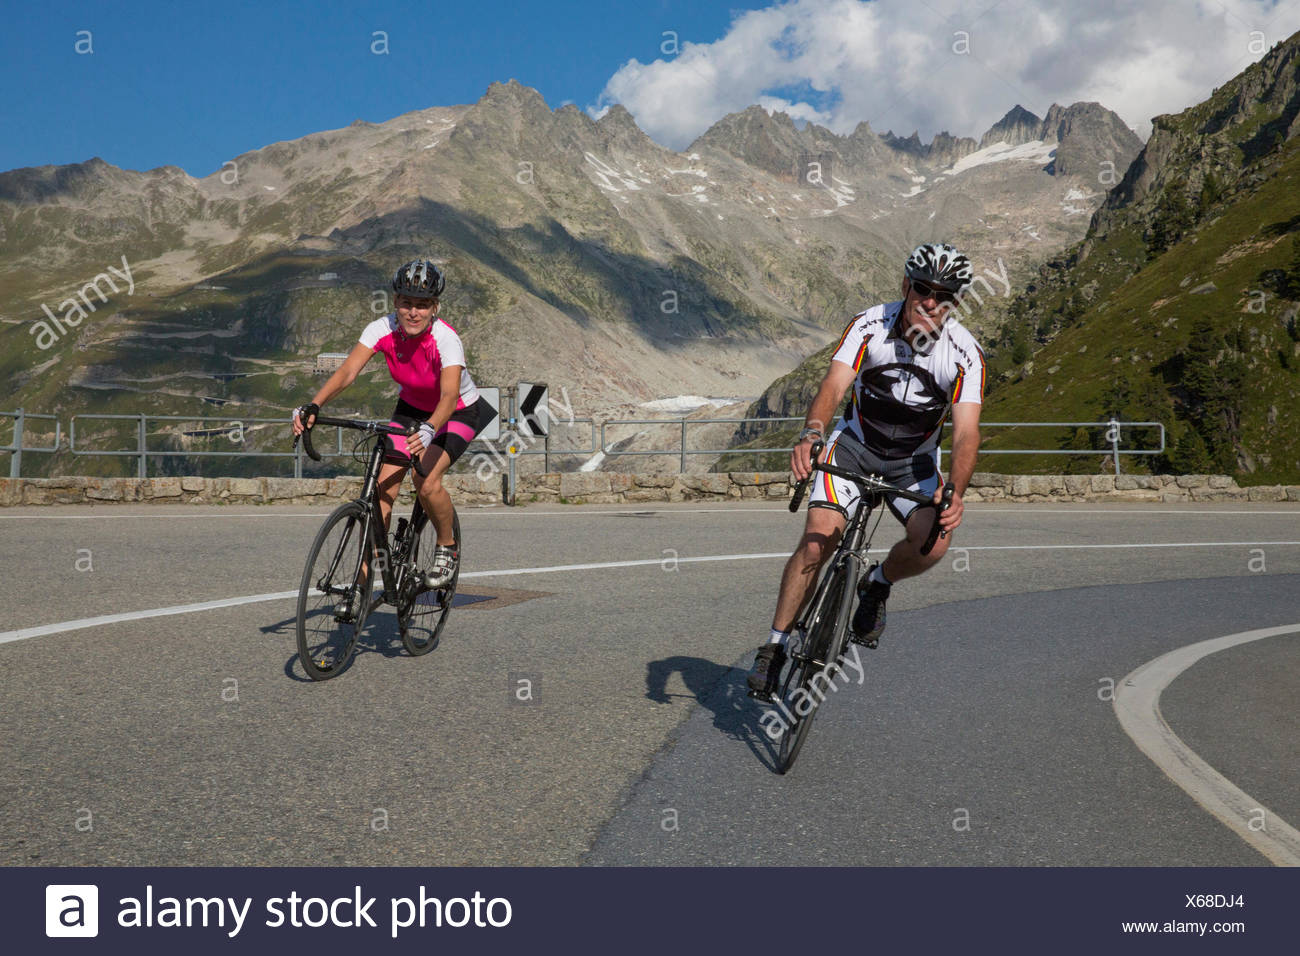 Gletsch VS, riding a bicycle, Grimsel Pass, canton, VS, Valais, glacier, ice, moraine, bicycle, bicycles, bike, riding a bicycle - Stock Image